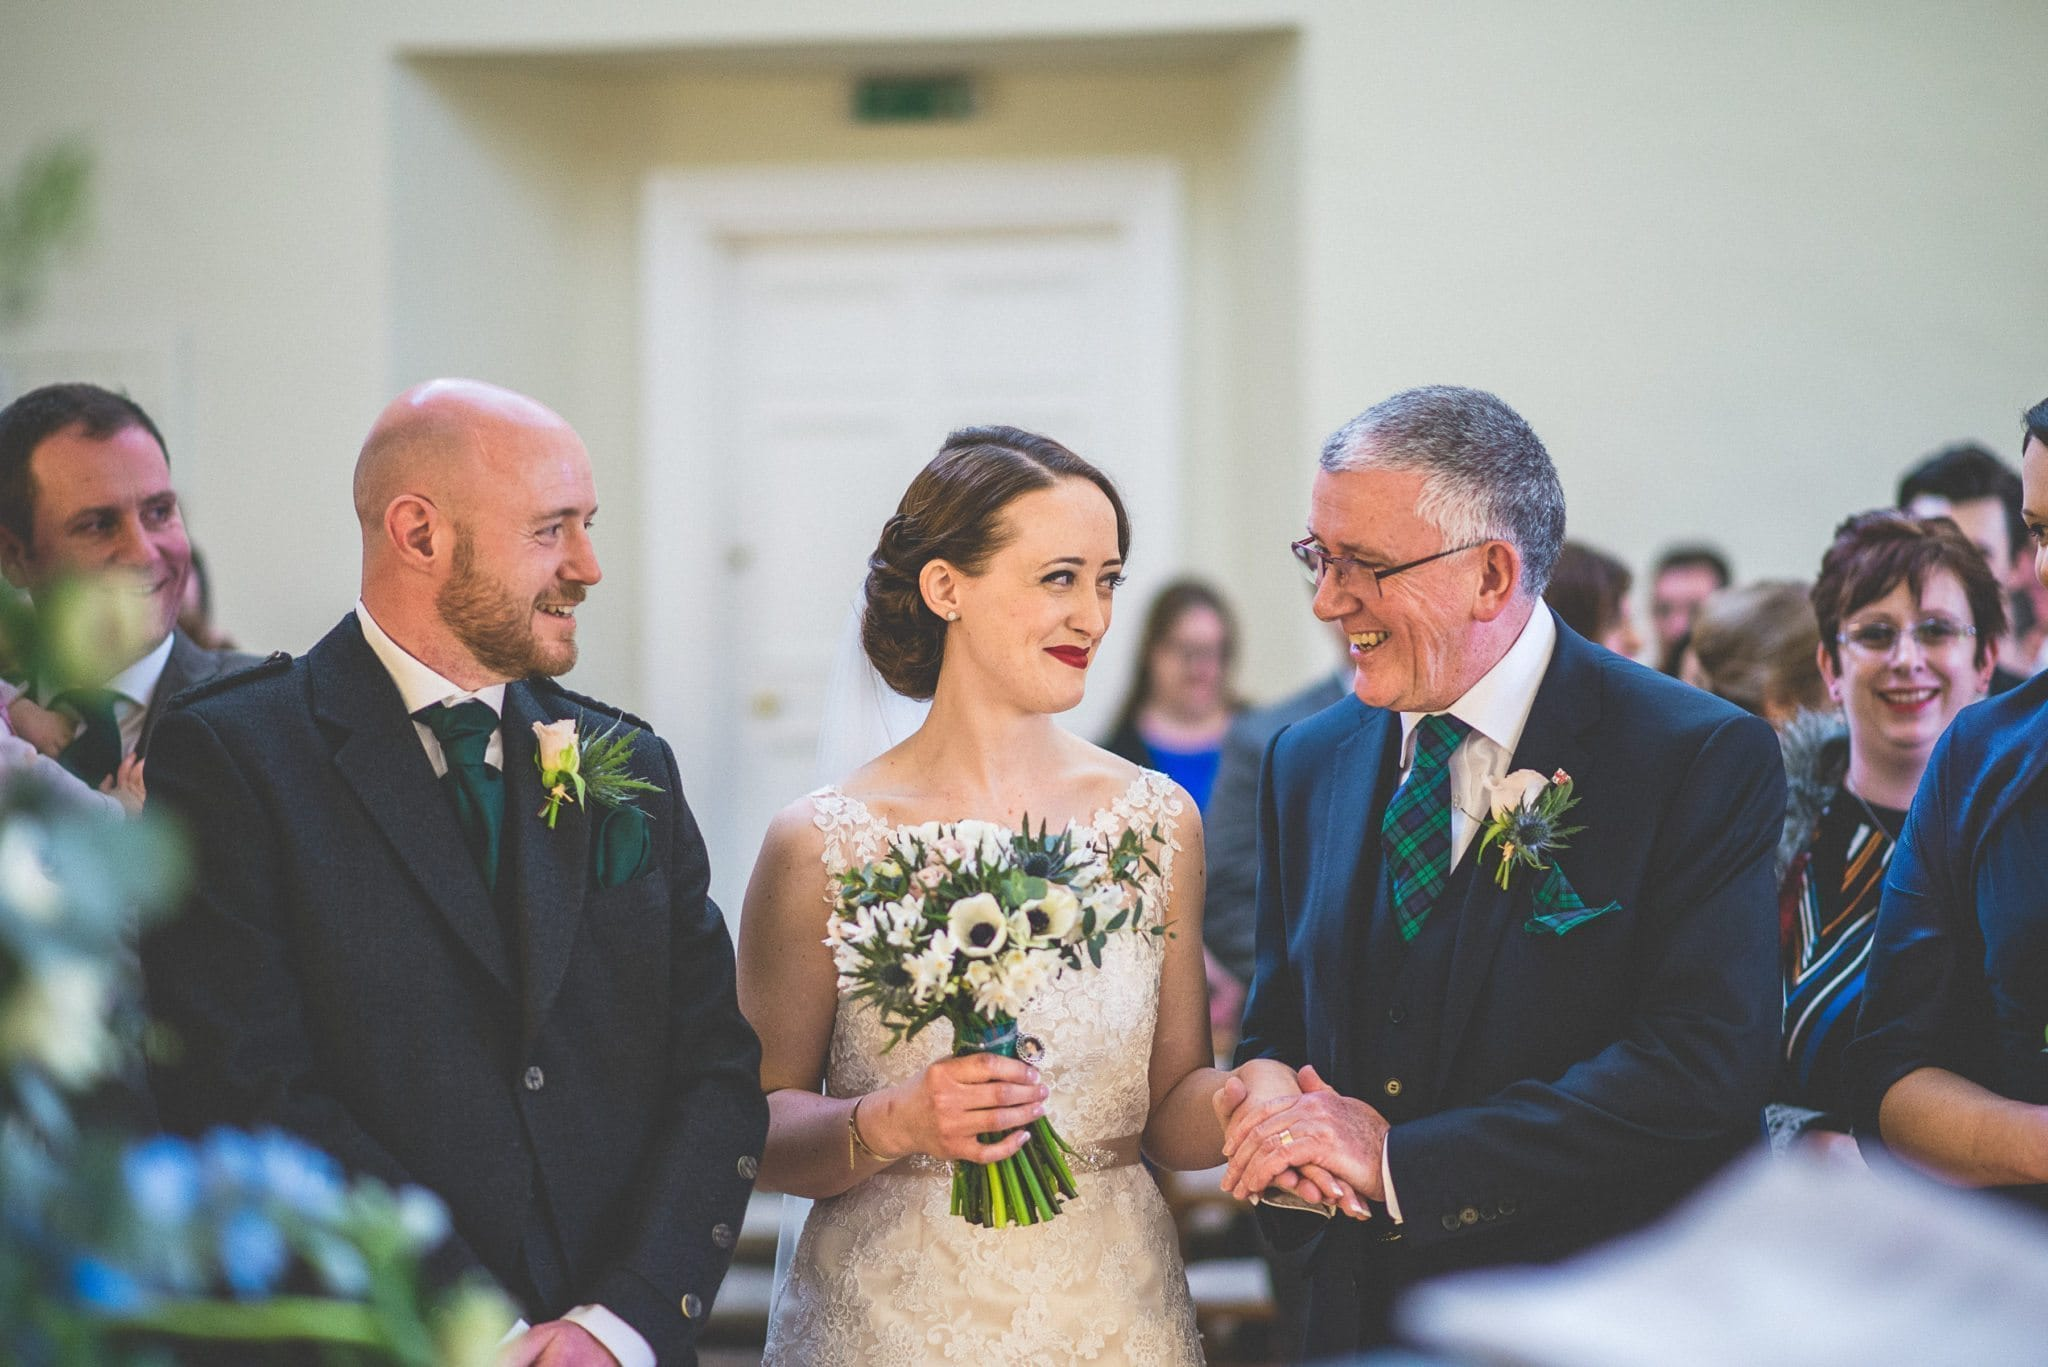 Brides smiles at her father as they reach the end of the aisle in Lantern Hall